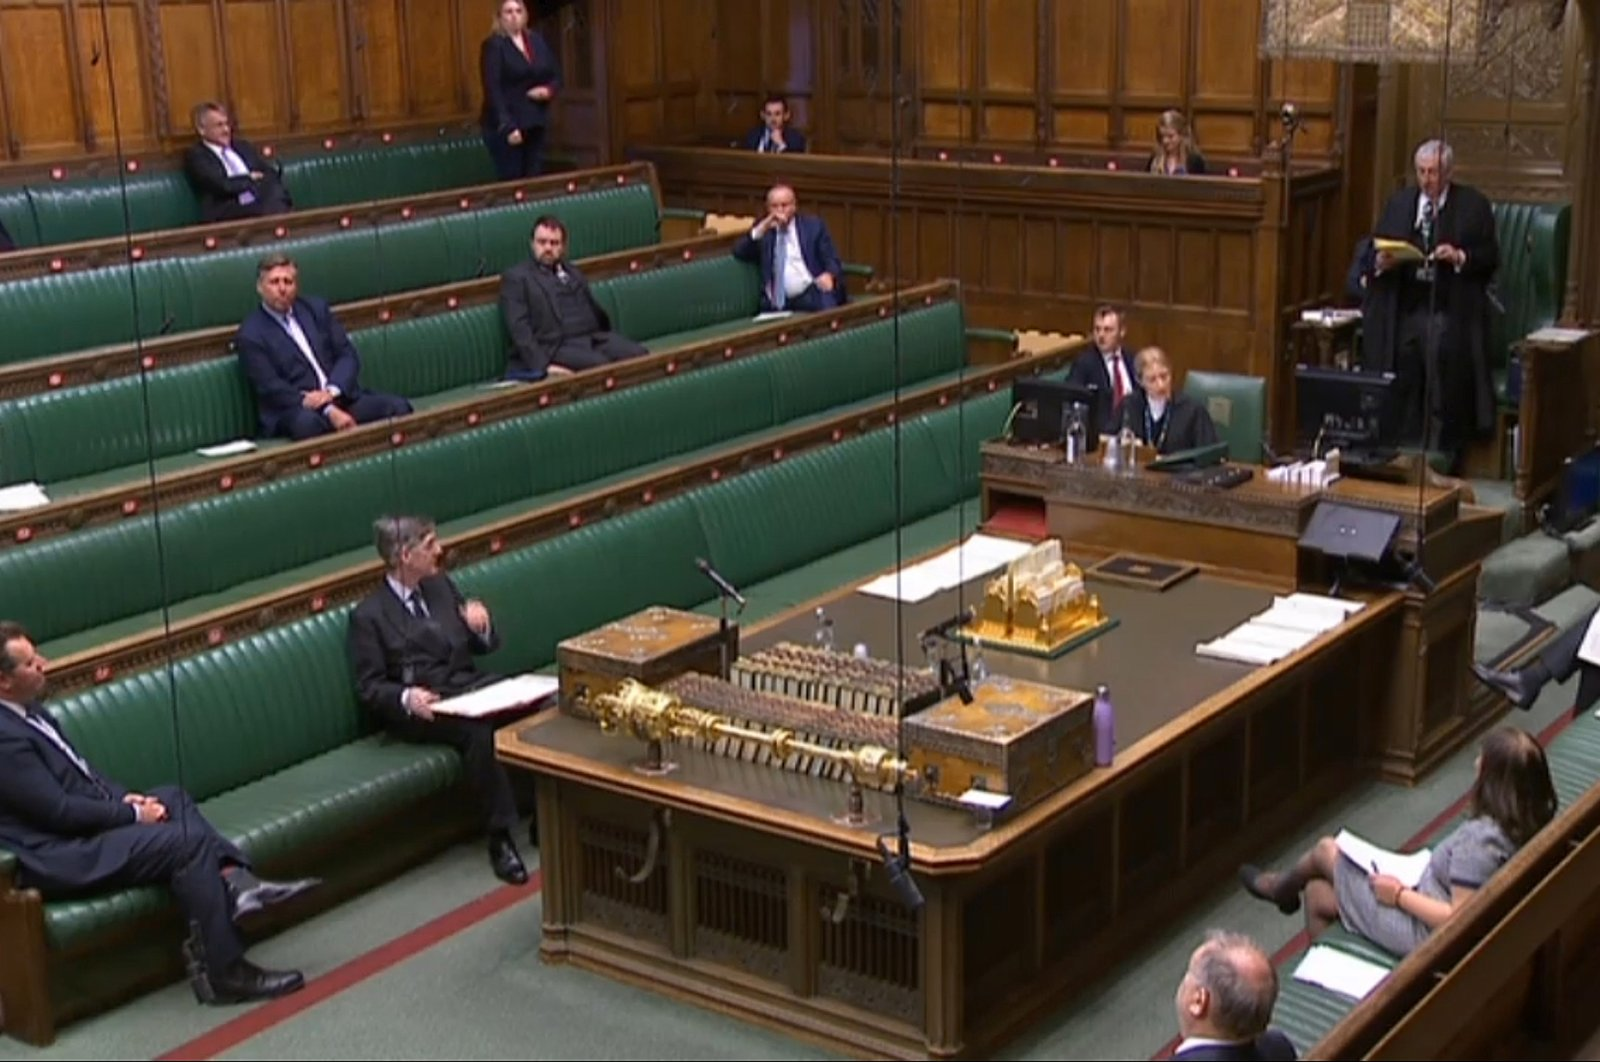 A video grab from footage broadcast by the UK Parliament's Parliamentary Recording Unit (PRU) shows Members of Parliament sitting in the Chamber in the House of Commons, in London on April 21, 2020, where social distancing measures have been put in place due to the novel coronavirus COVID-19 pandemic. (AFP PHOTO/PRU)